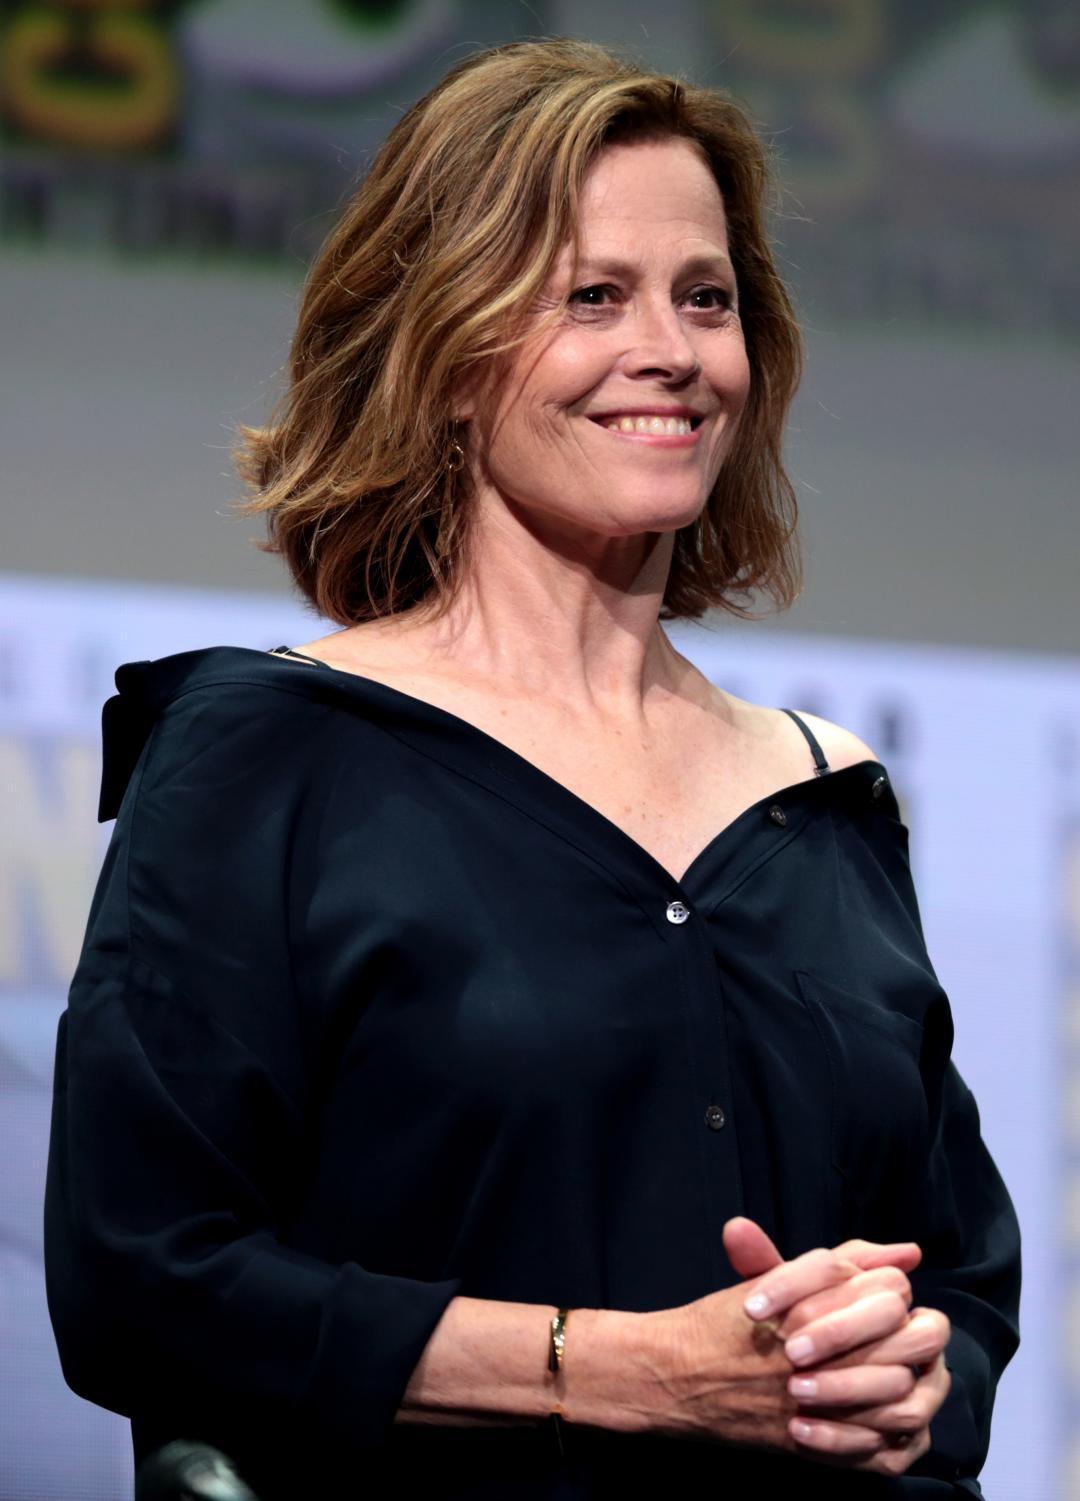 Sigourney Weaver, prtrayed Ellen Ripley, who is to this date one of the most bad ass characters in sci-fy.